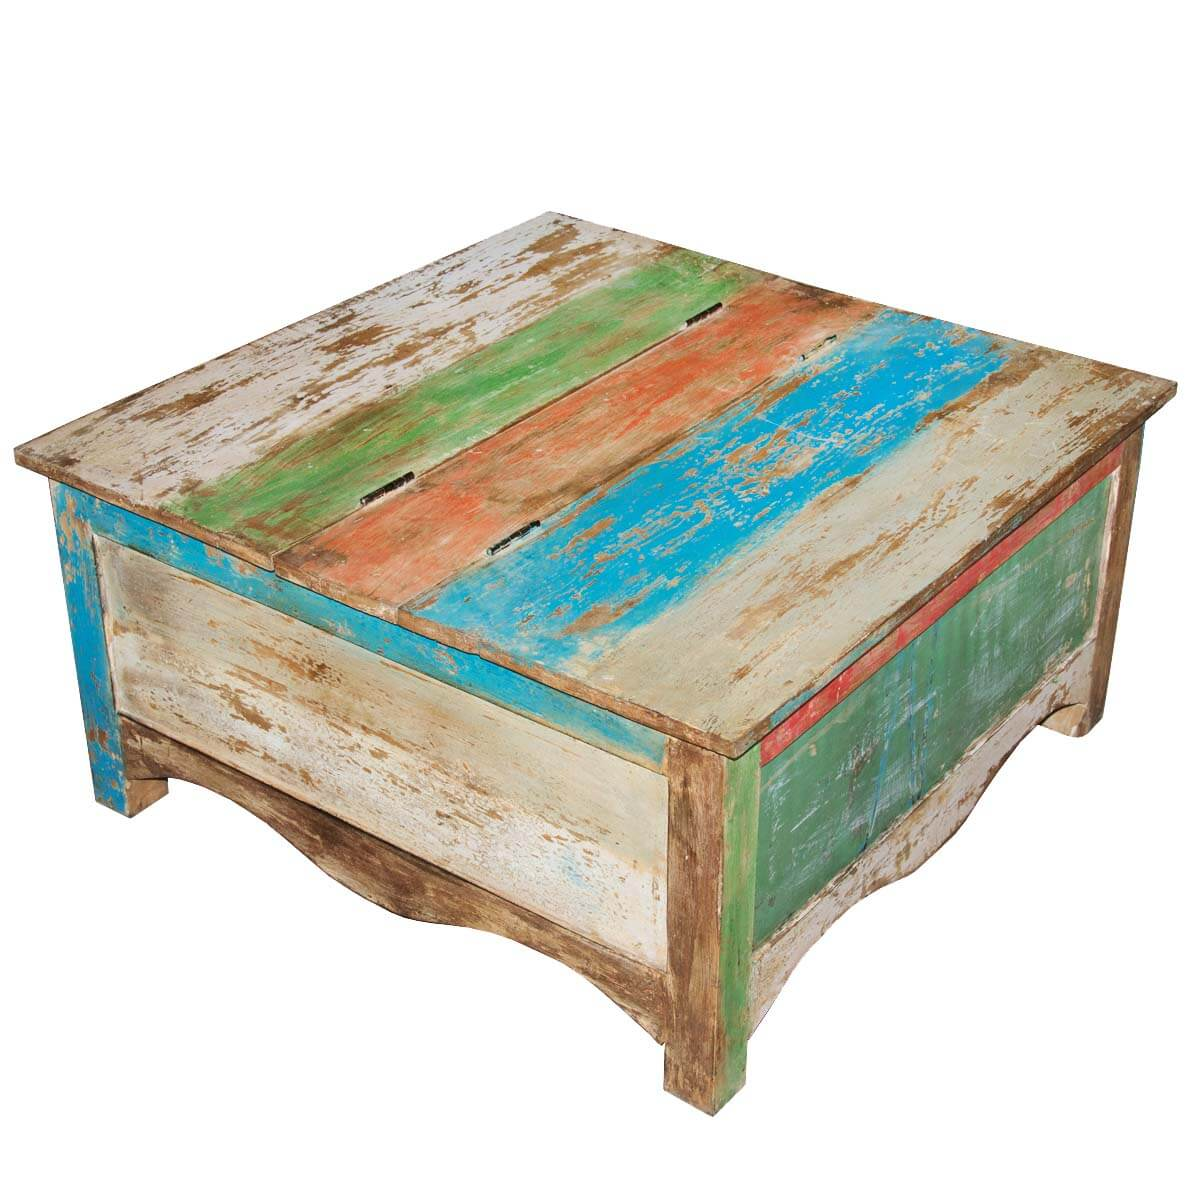 Rainbow Striped Square Reclaimed Wood Coffee Table Storage